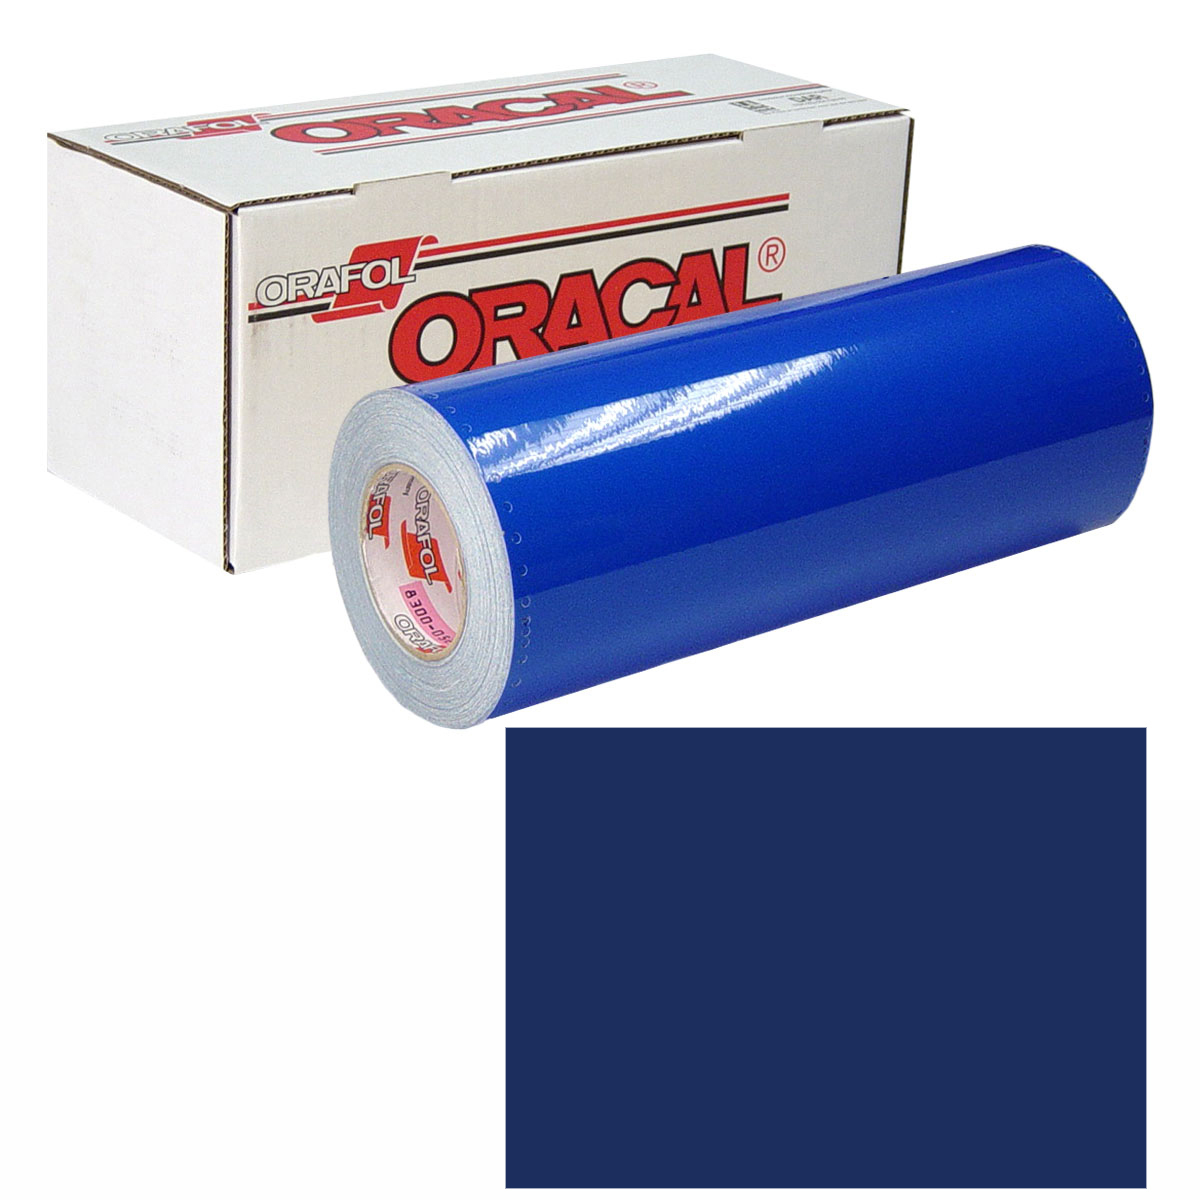 ORACAL 631 Unp 30in X 50yd 050 Dark Blue